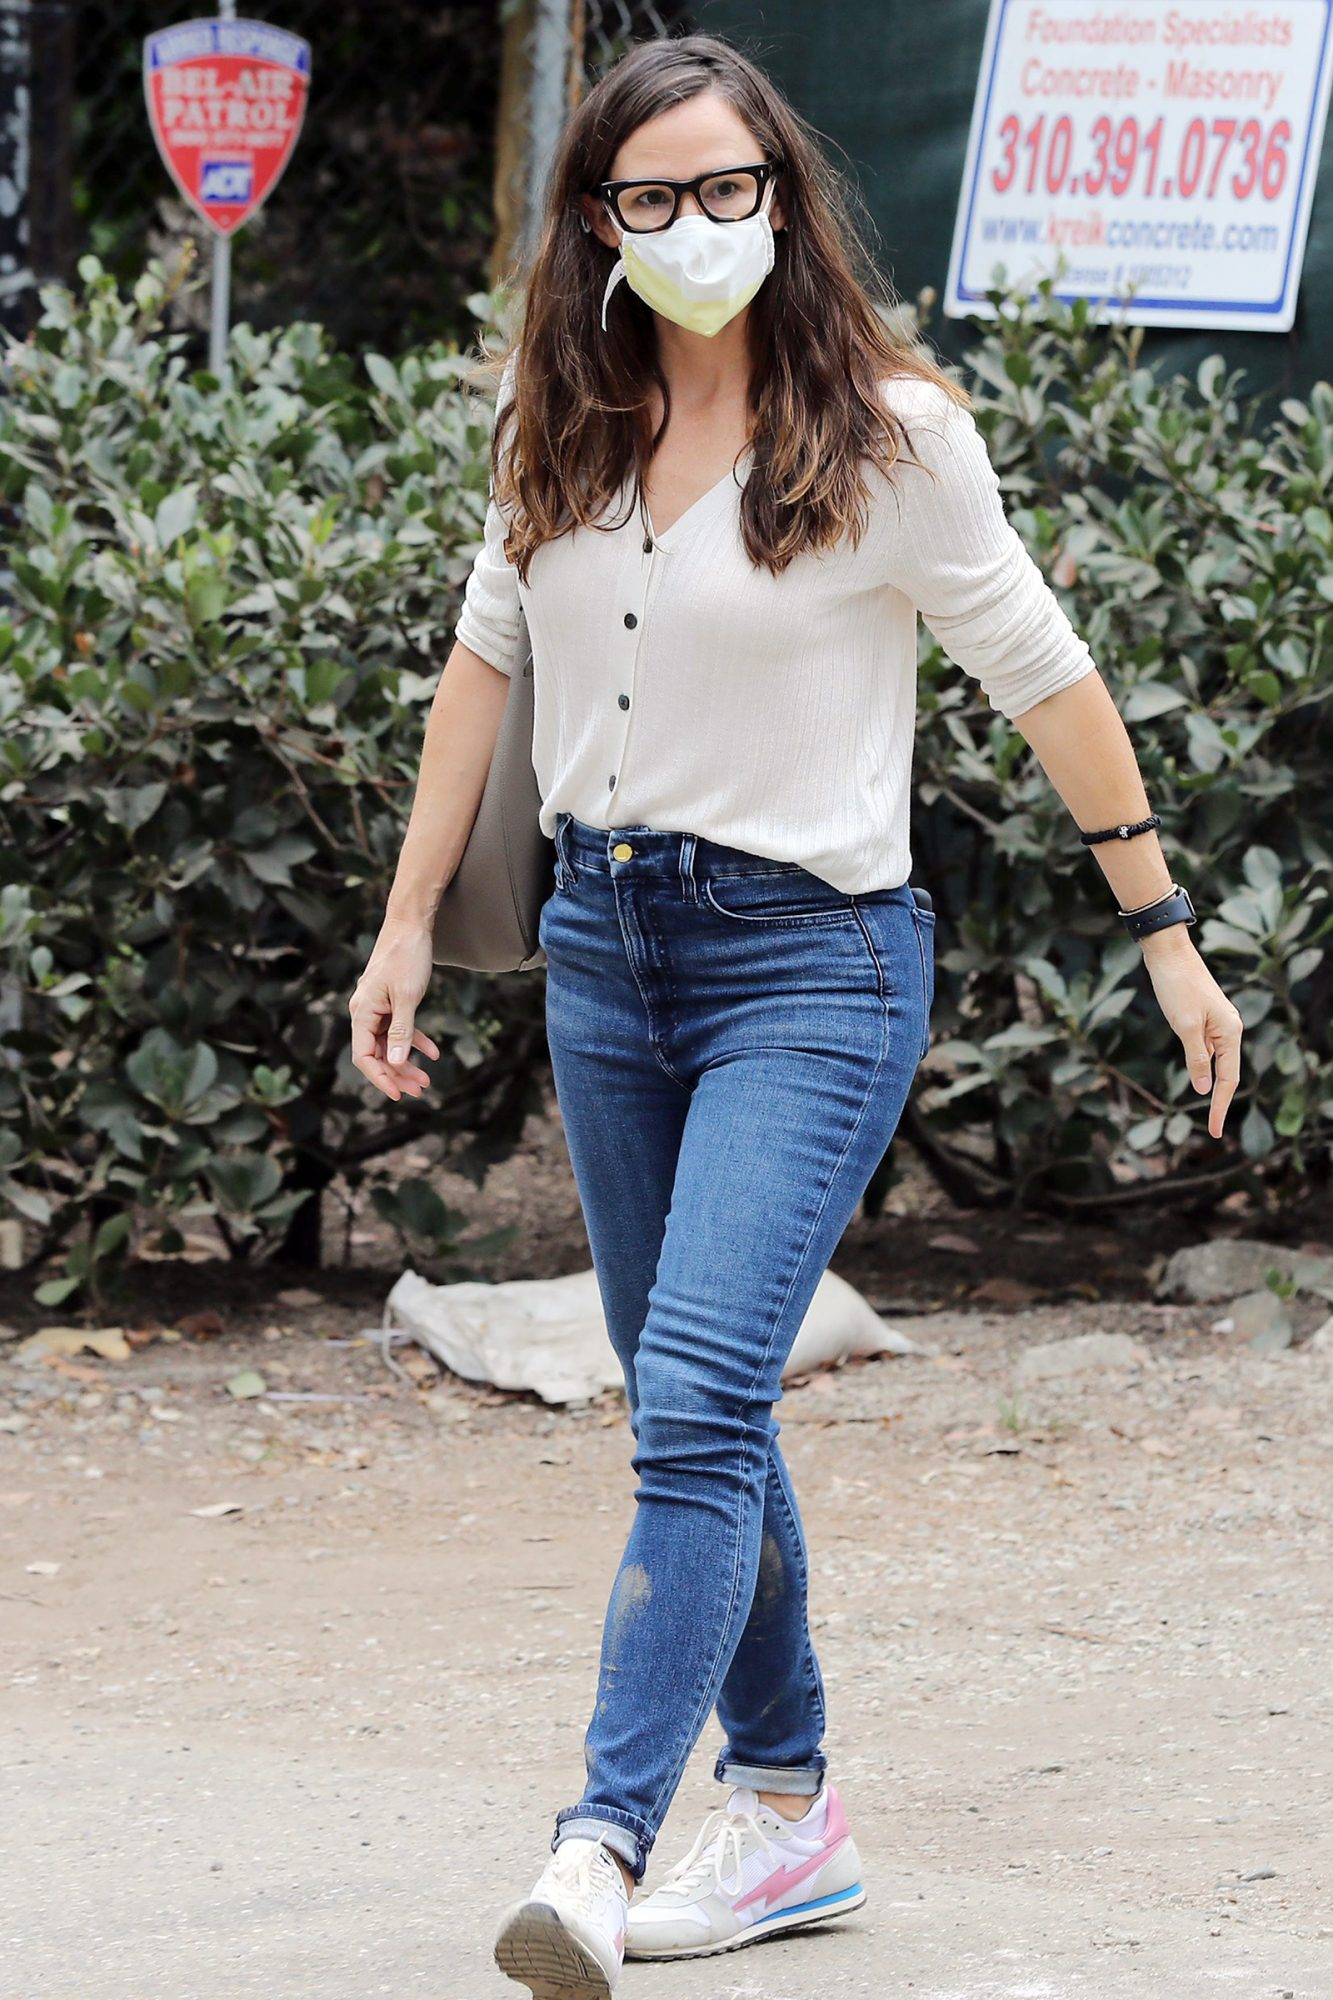 Jennifer Garner seen leaving the construction of her new home in Brentwood Jennifer Garner out and about, Los Angeles, USA - 22 Oct 2020